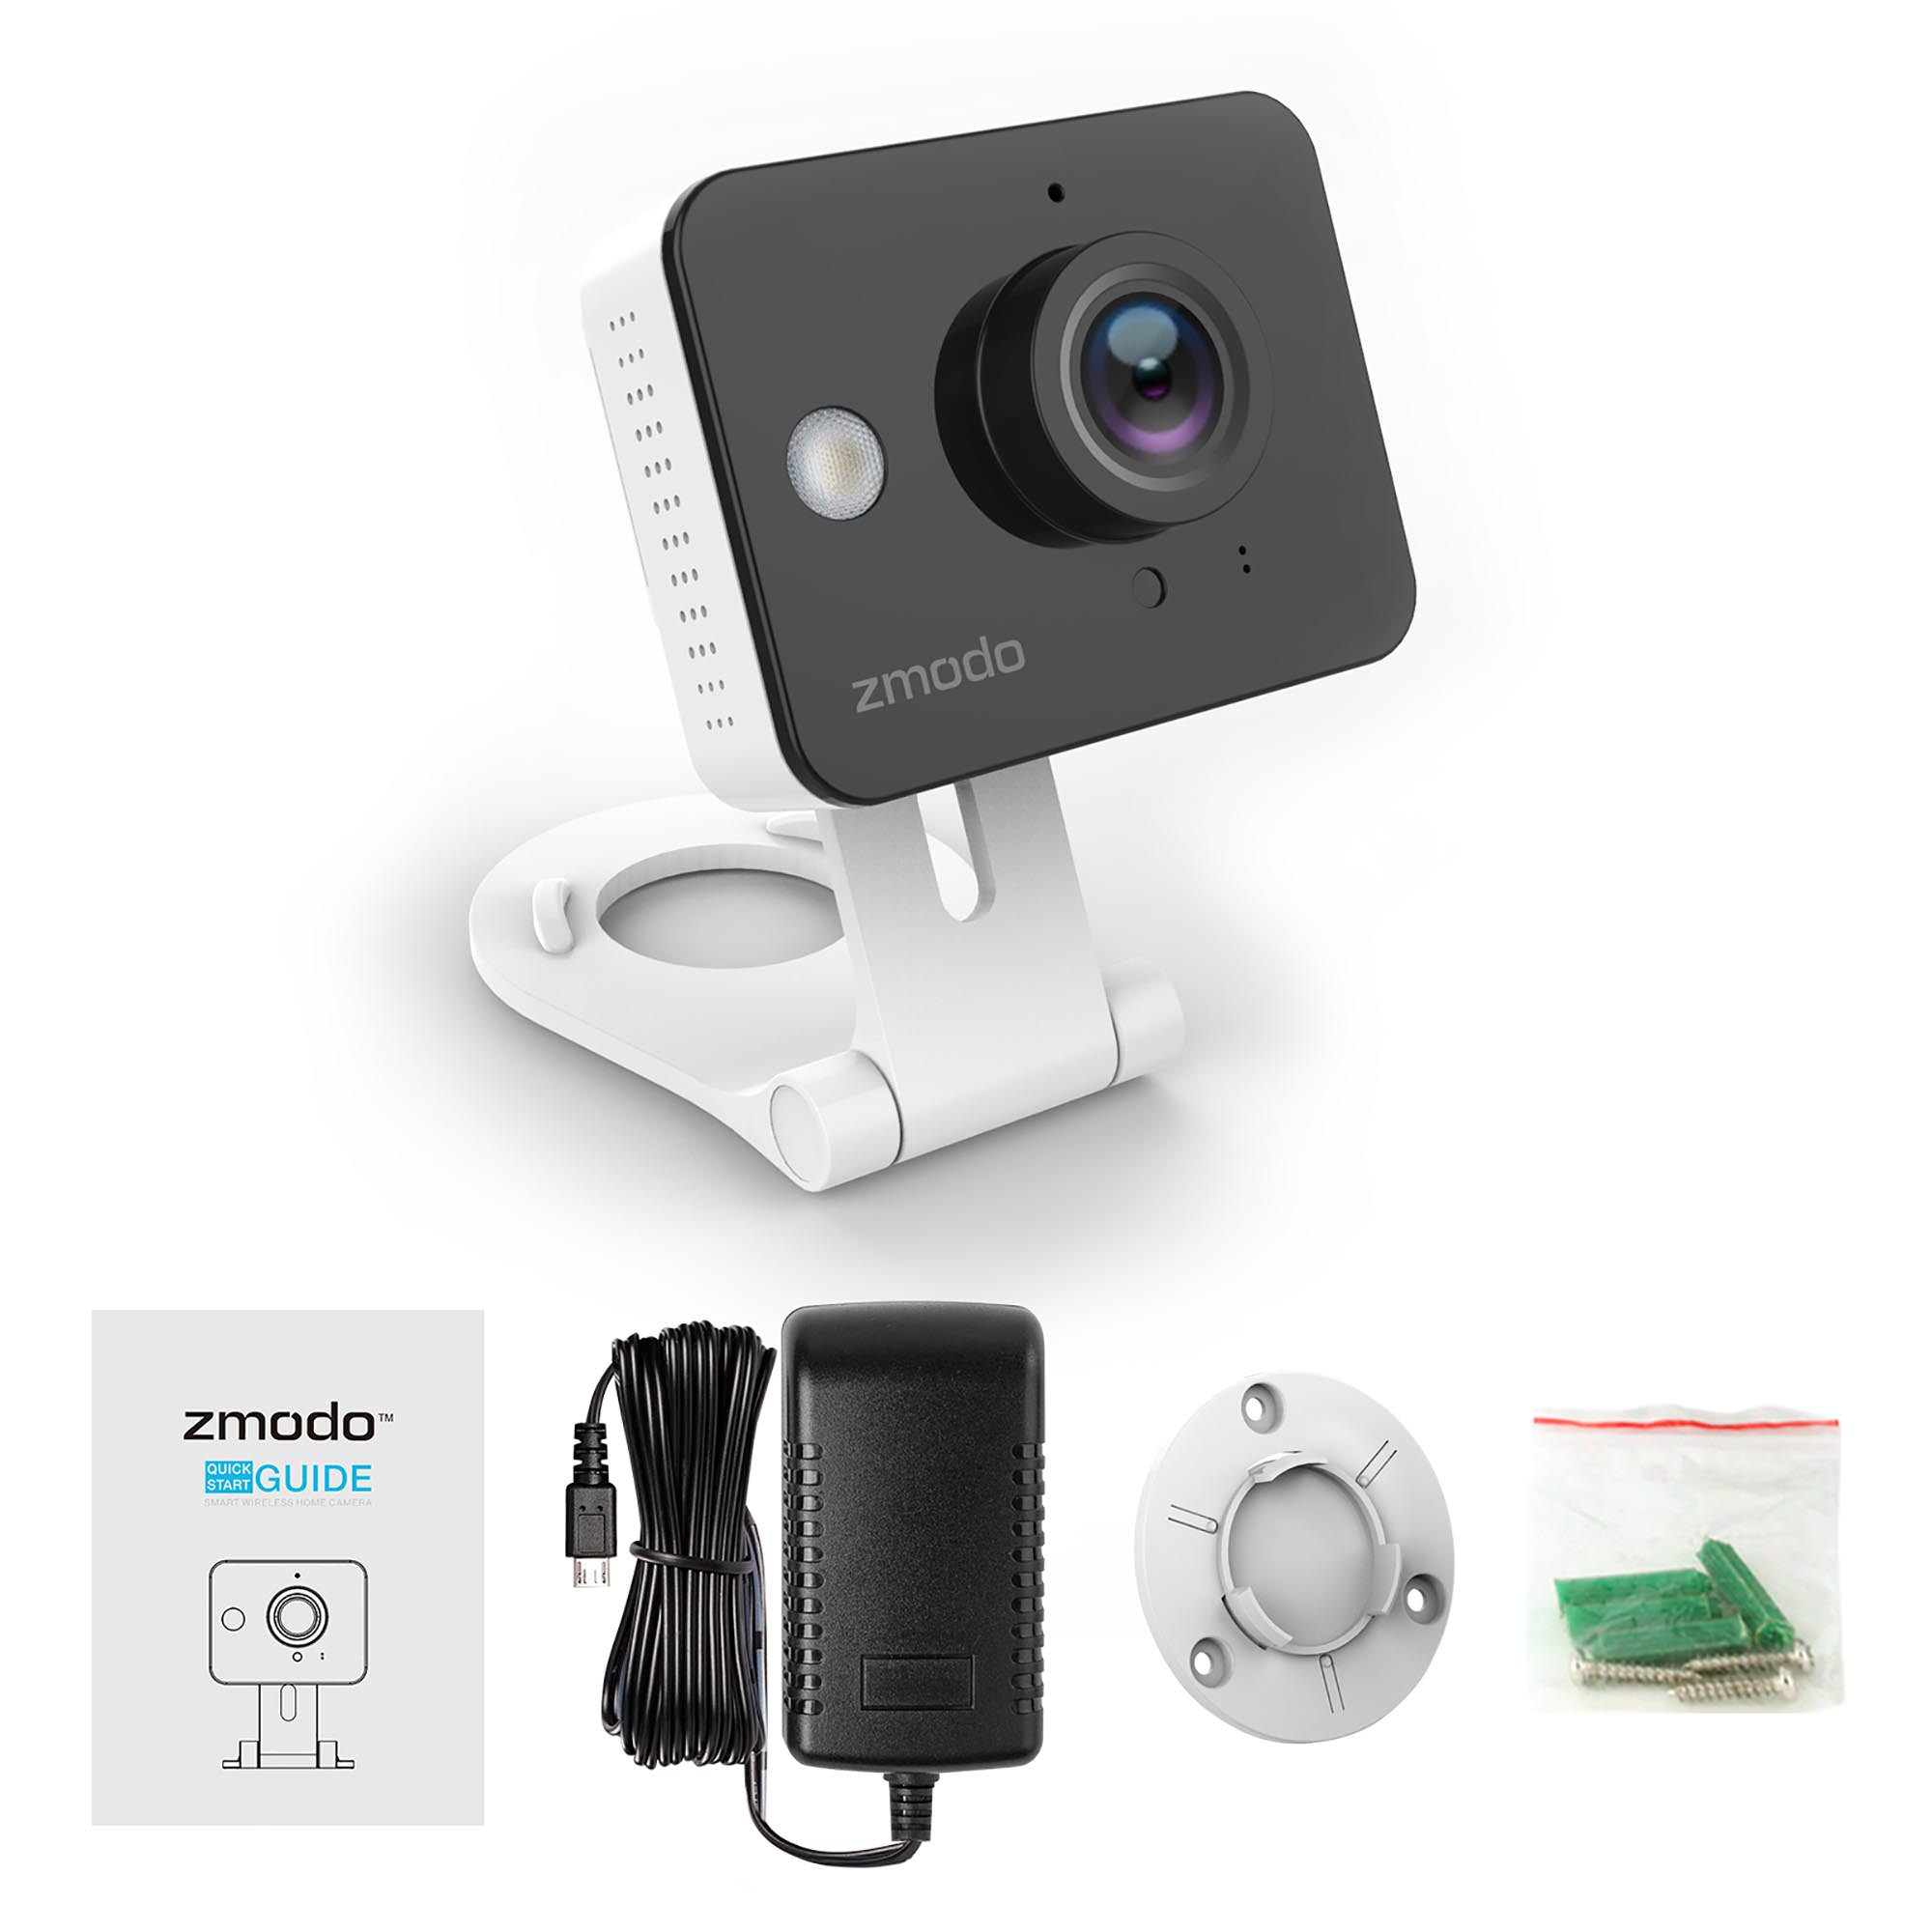 Zmodo 720P HD Mini WiFi Smart Security Camera Two Way Audio Night Vision    Free 6 Month Cloud Service   Walmart.com